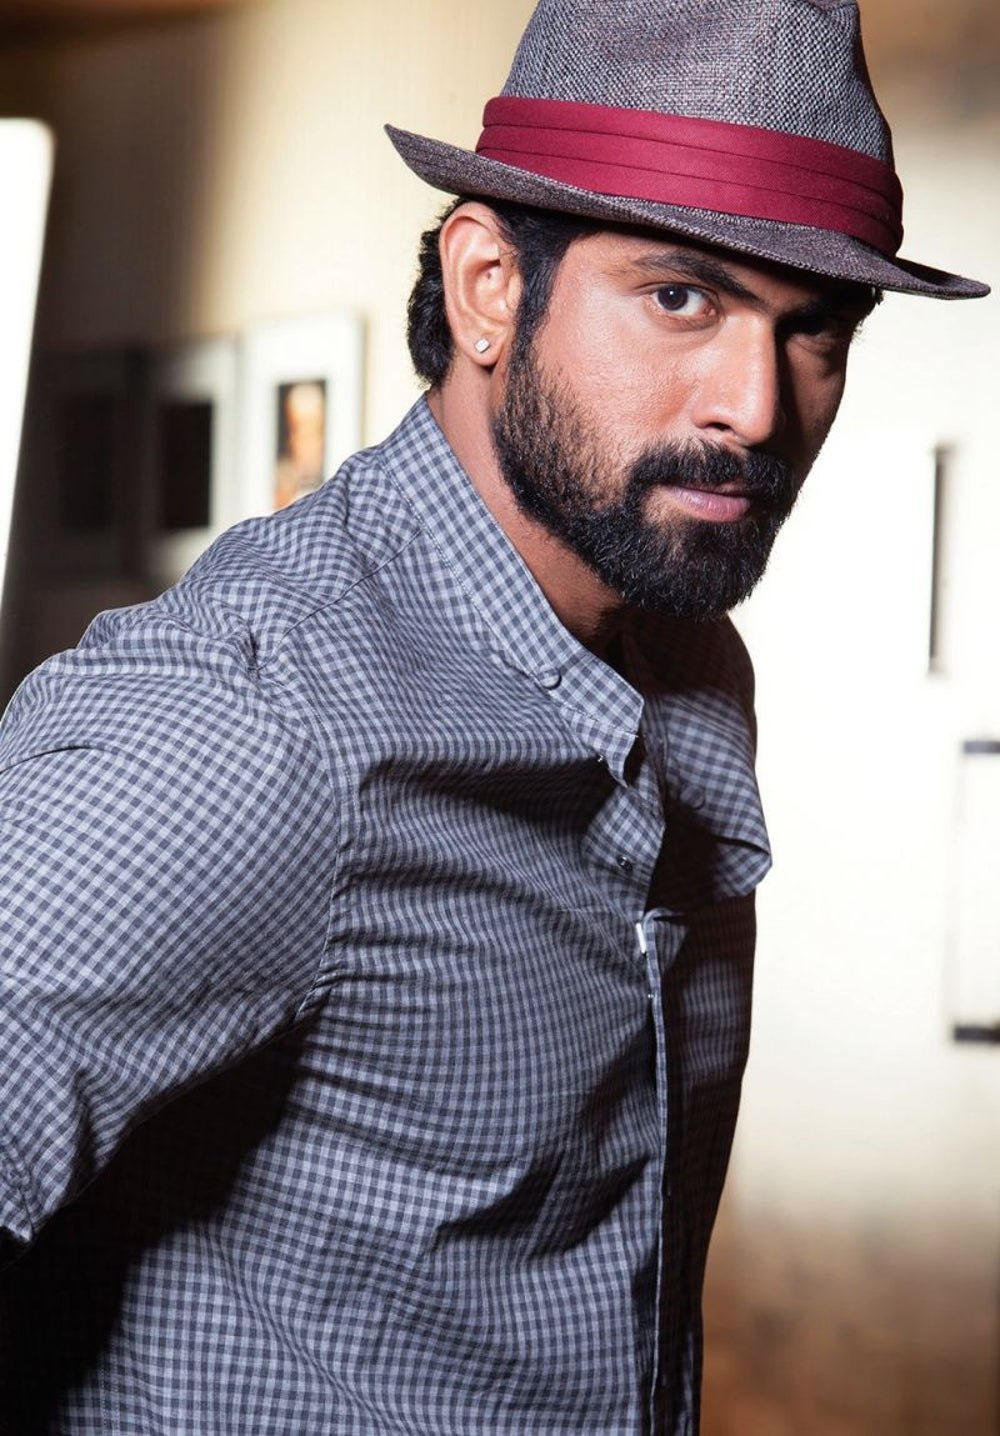 Entrepreneur Turned Actor - Rana Daggubati, 32, Actor & Producer